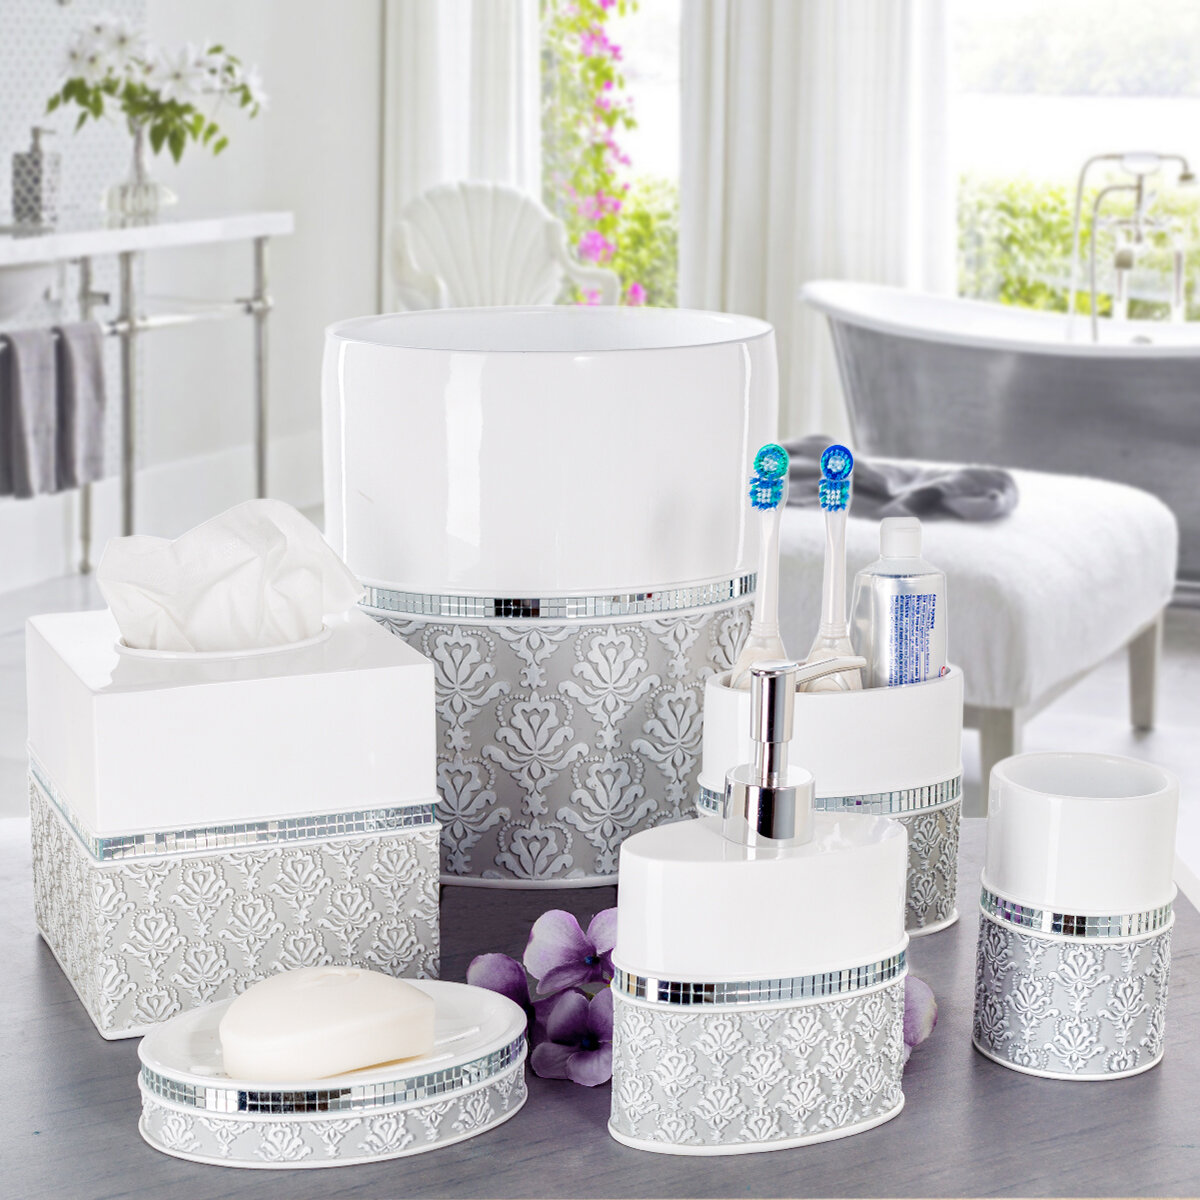 Creative Scents 6 Piece Bathroom Accessory Set & Reviews | Wayfair